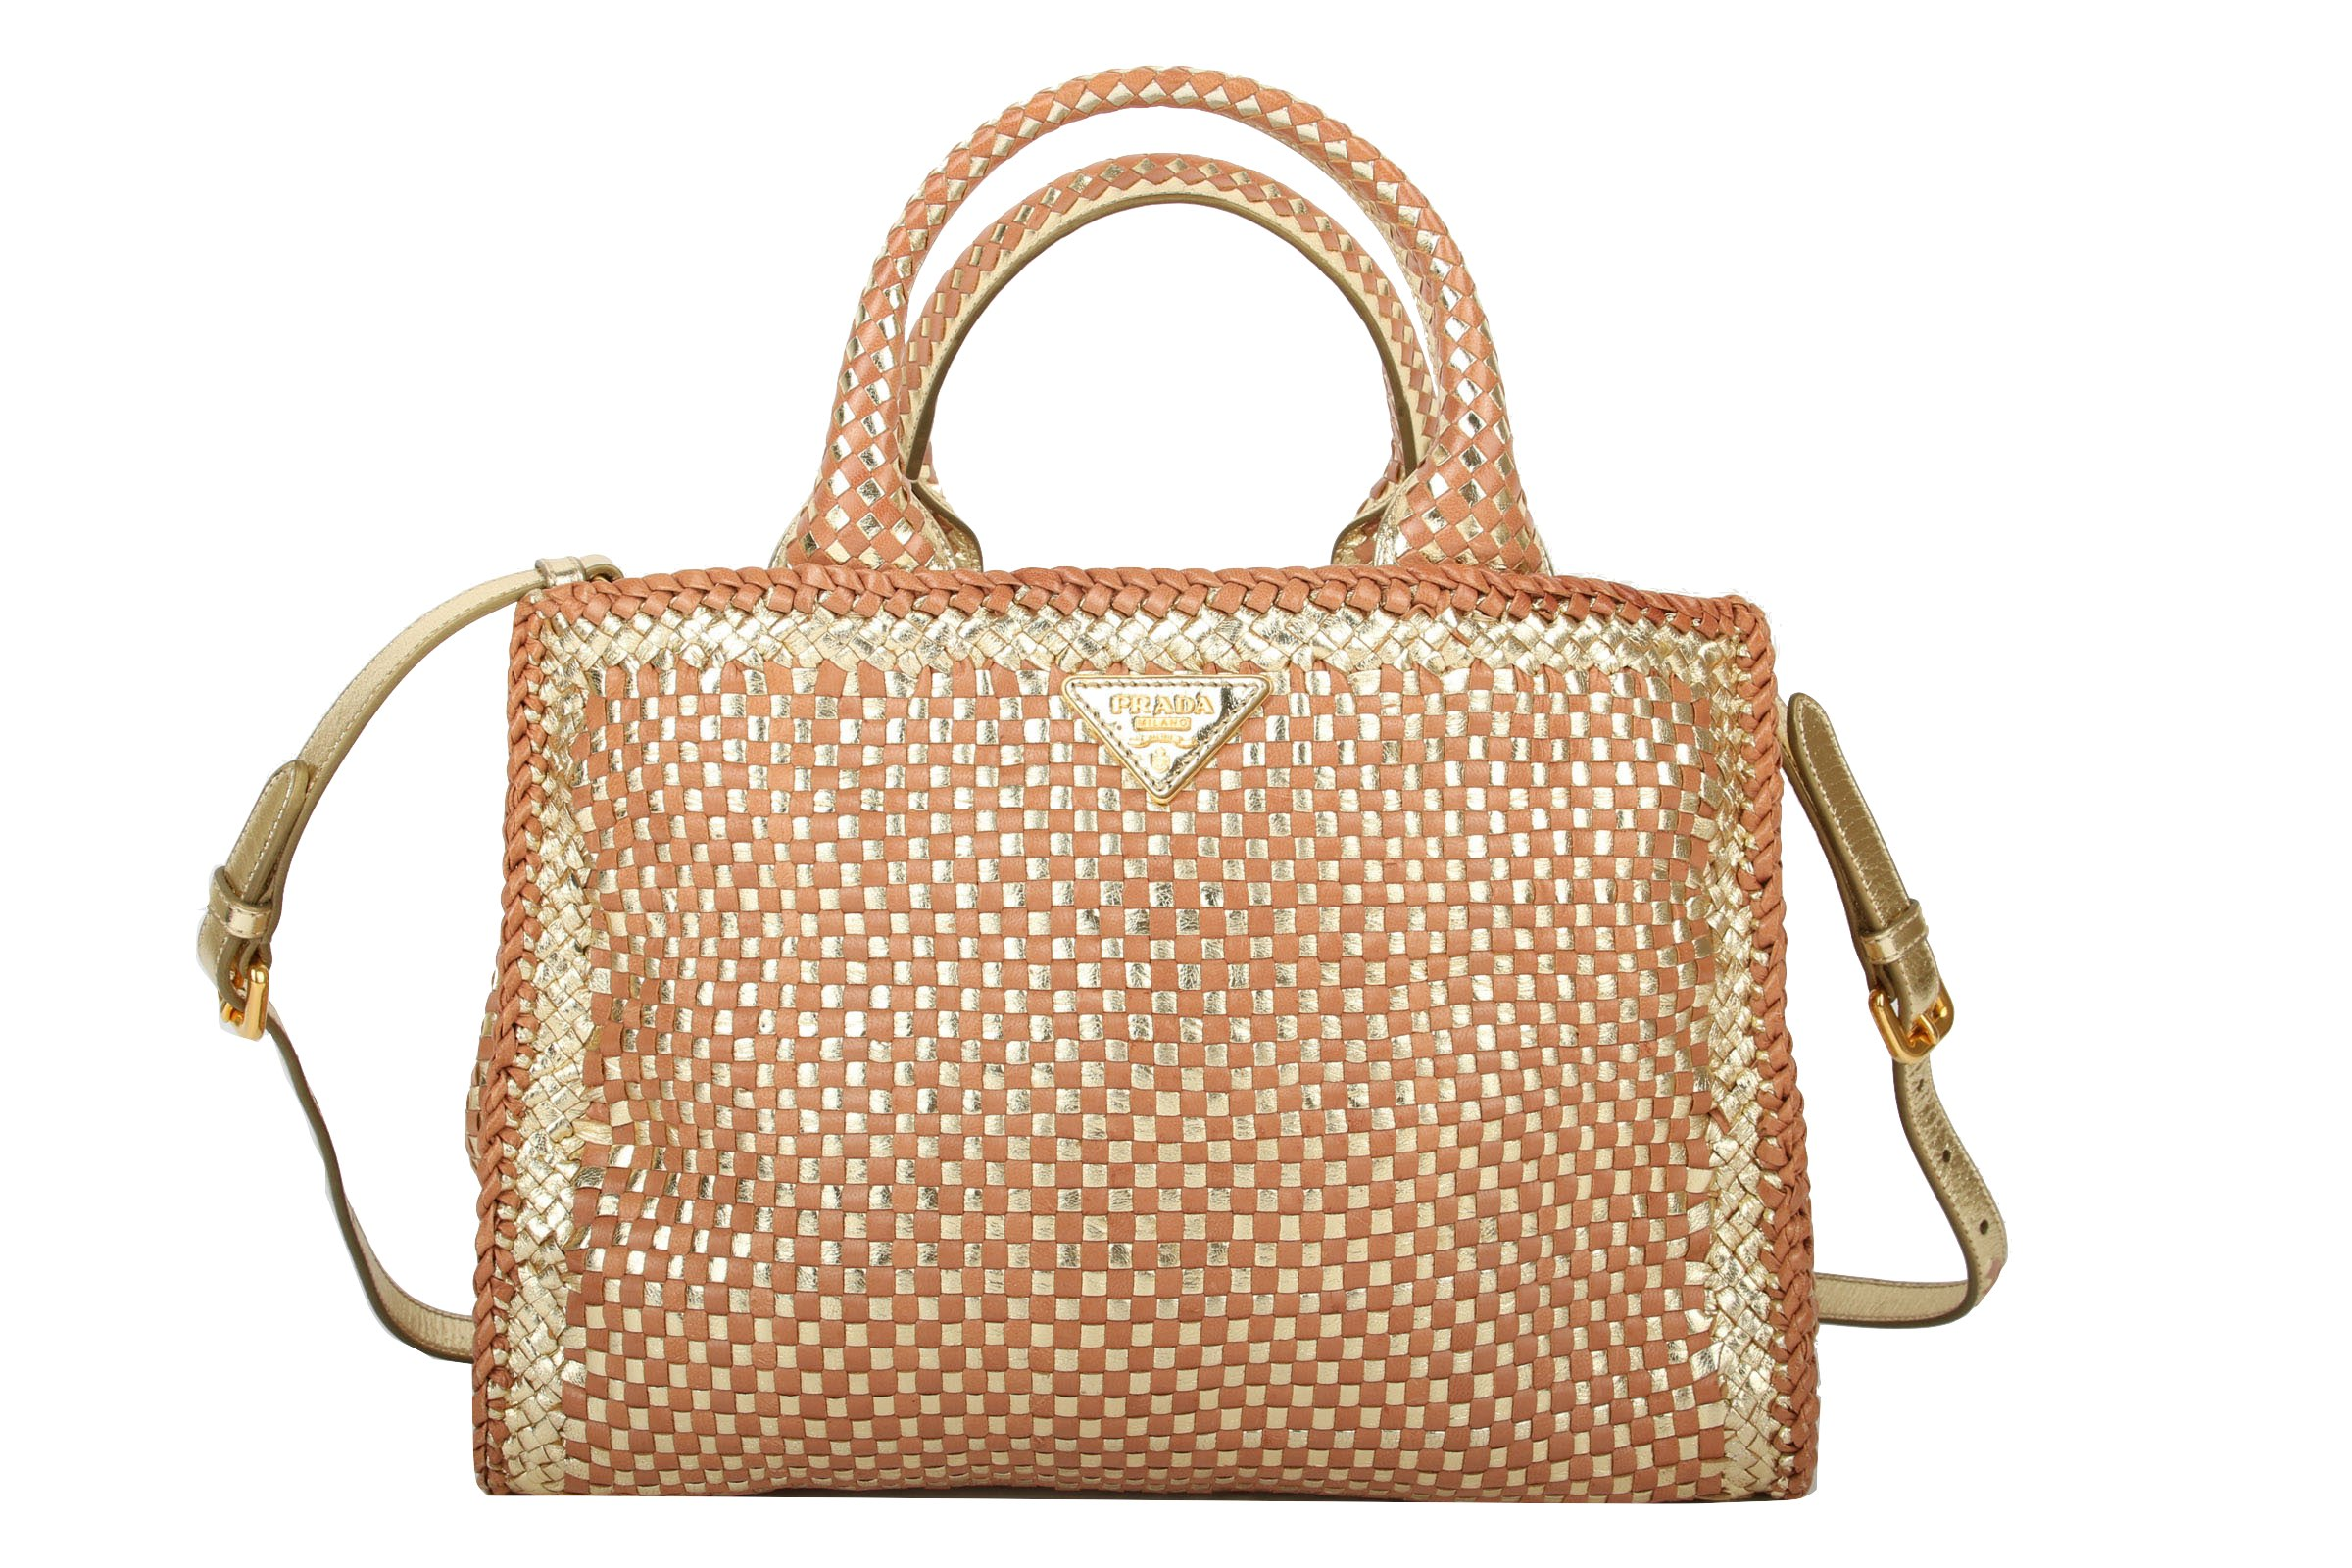 57f67215b0946 Prada Madras Bag Gold